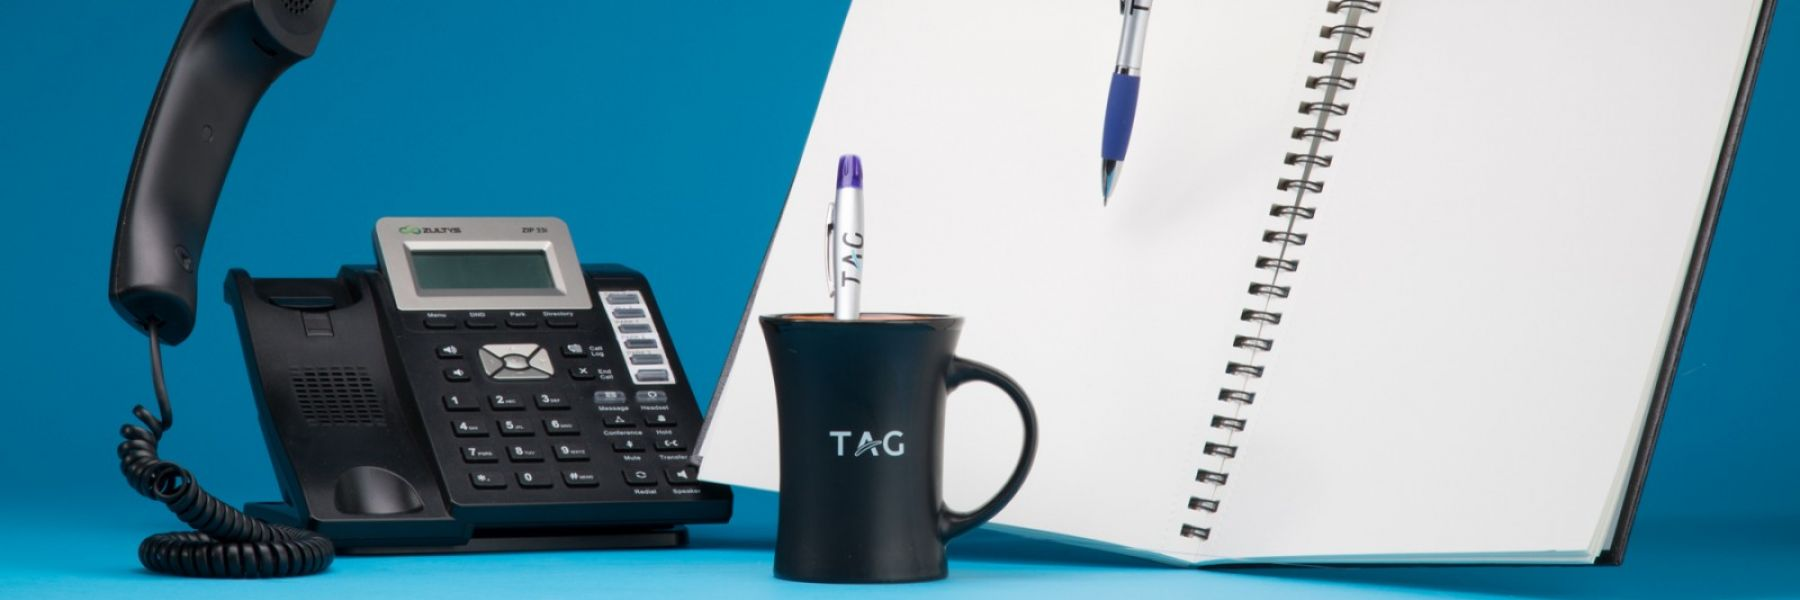 TAG PR Services. Picture of TAG phone, notebook and pens.